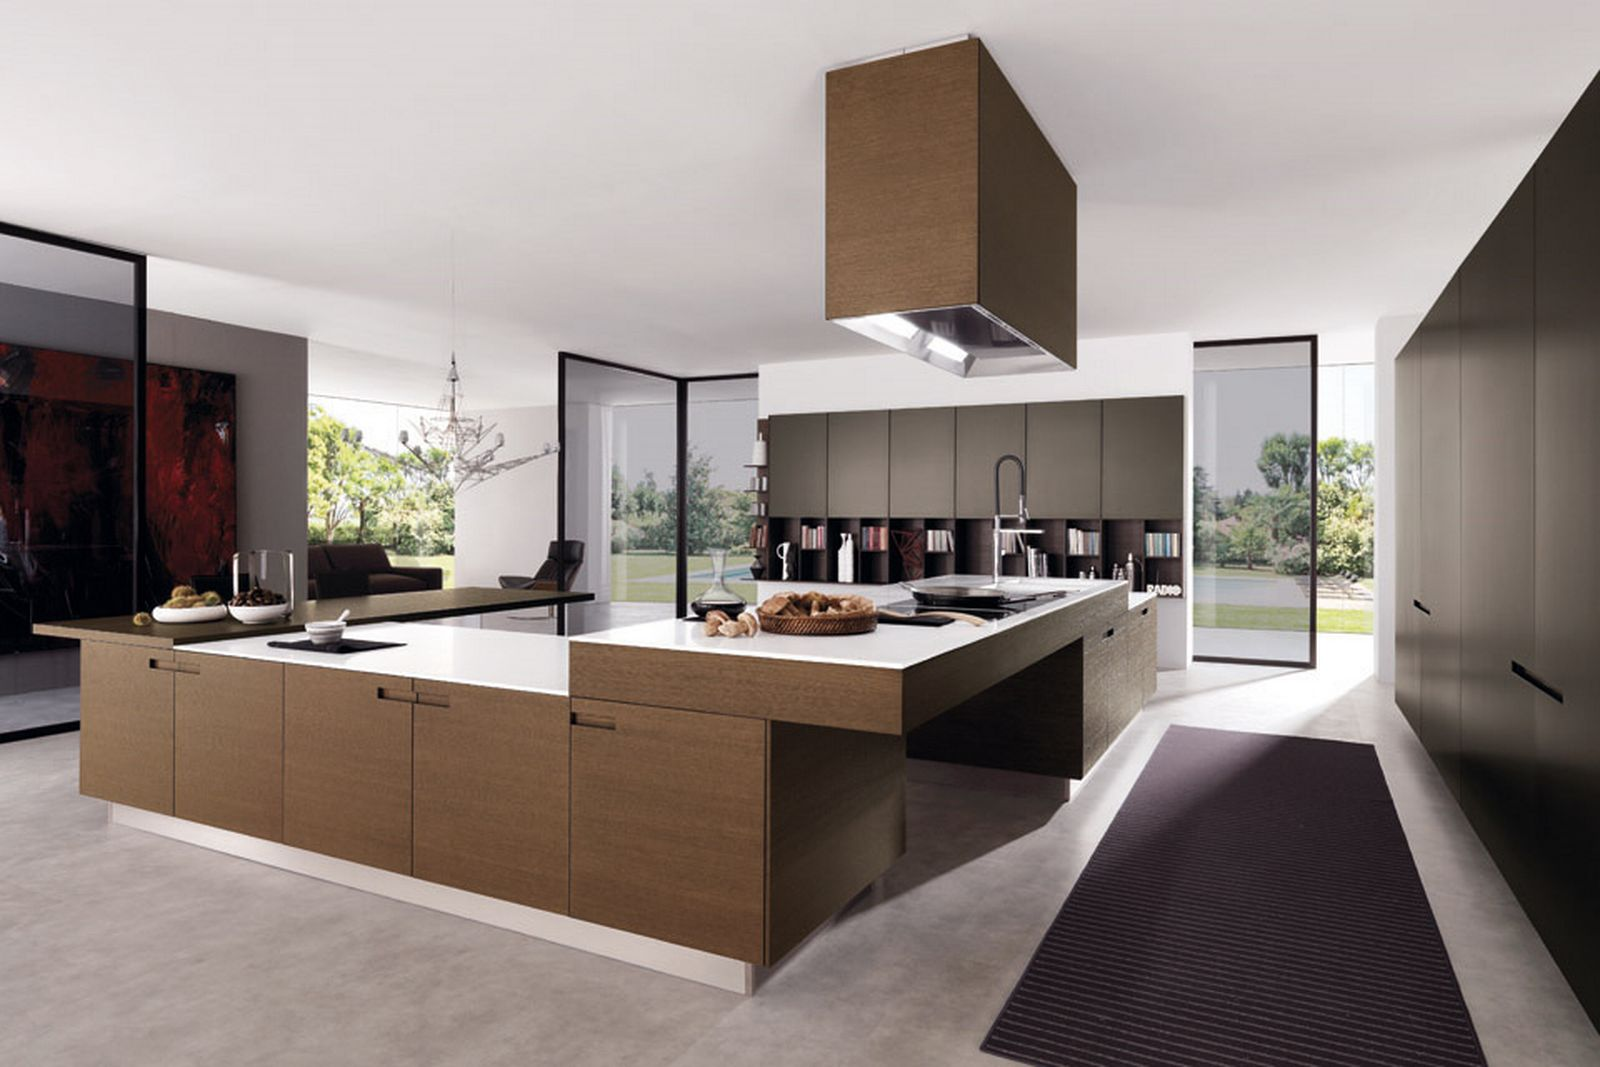 cute-modern-kitchen-on-kitchens-with-classic-modern-kitchen-design